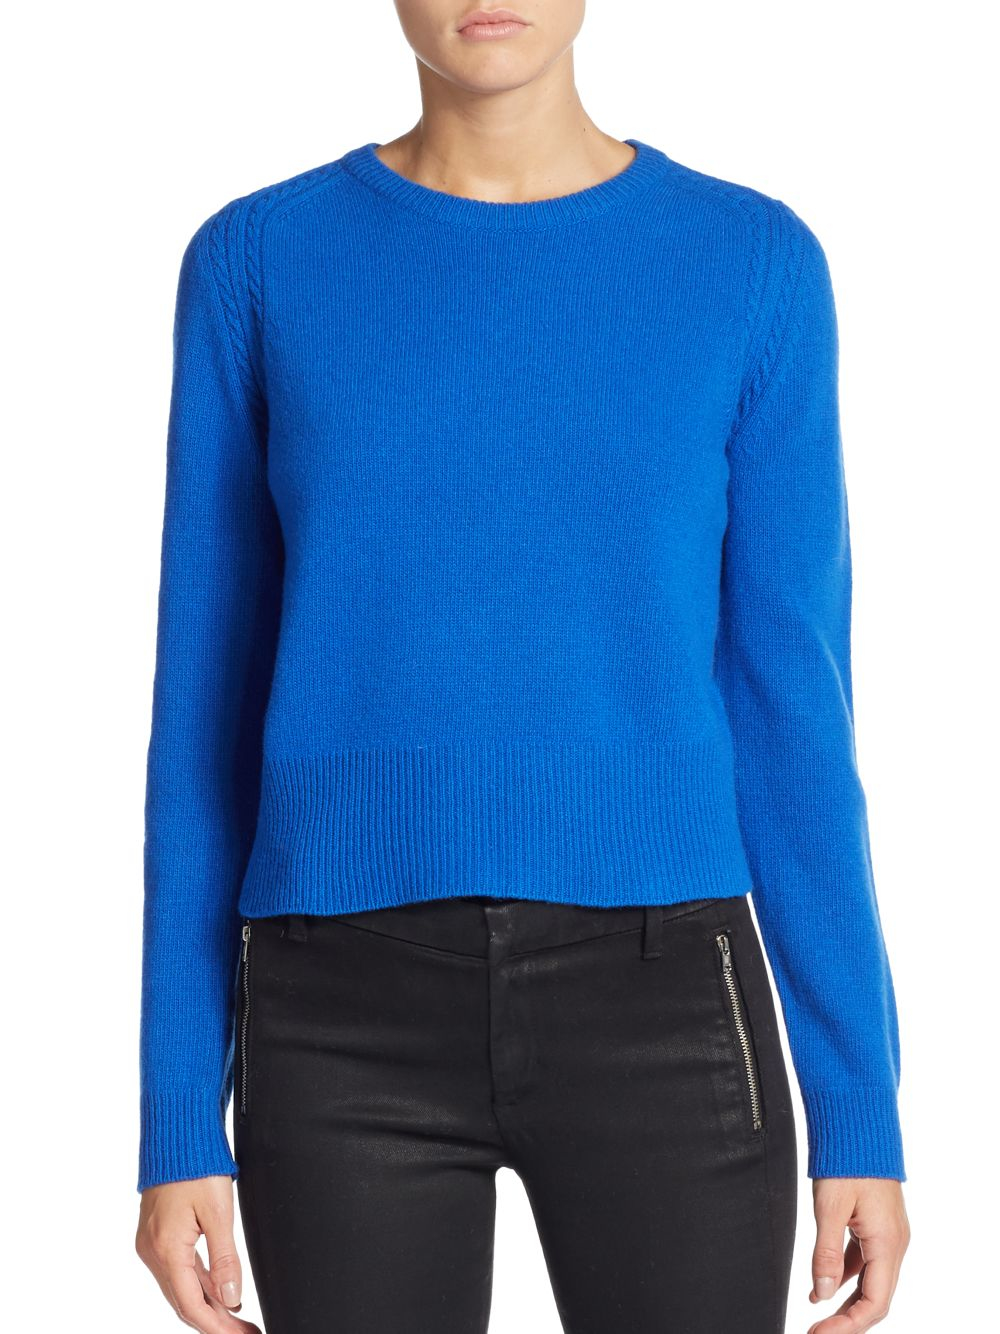 marc by marc jacobs wool sweater in blue lyst. Black Bedroom Furniture Sets. Home Design Ideas